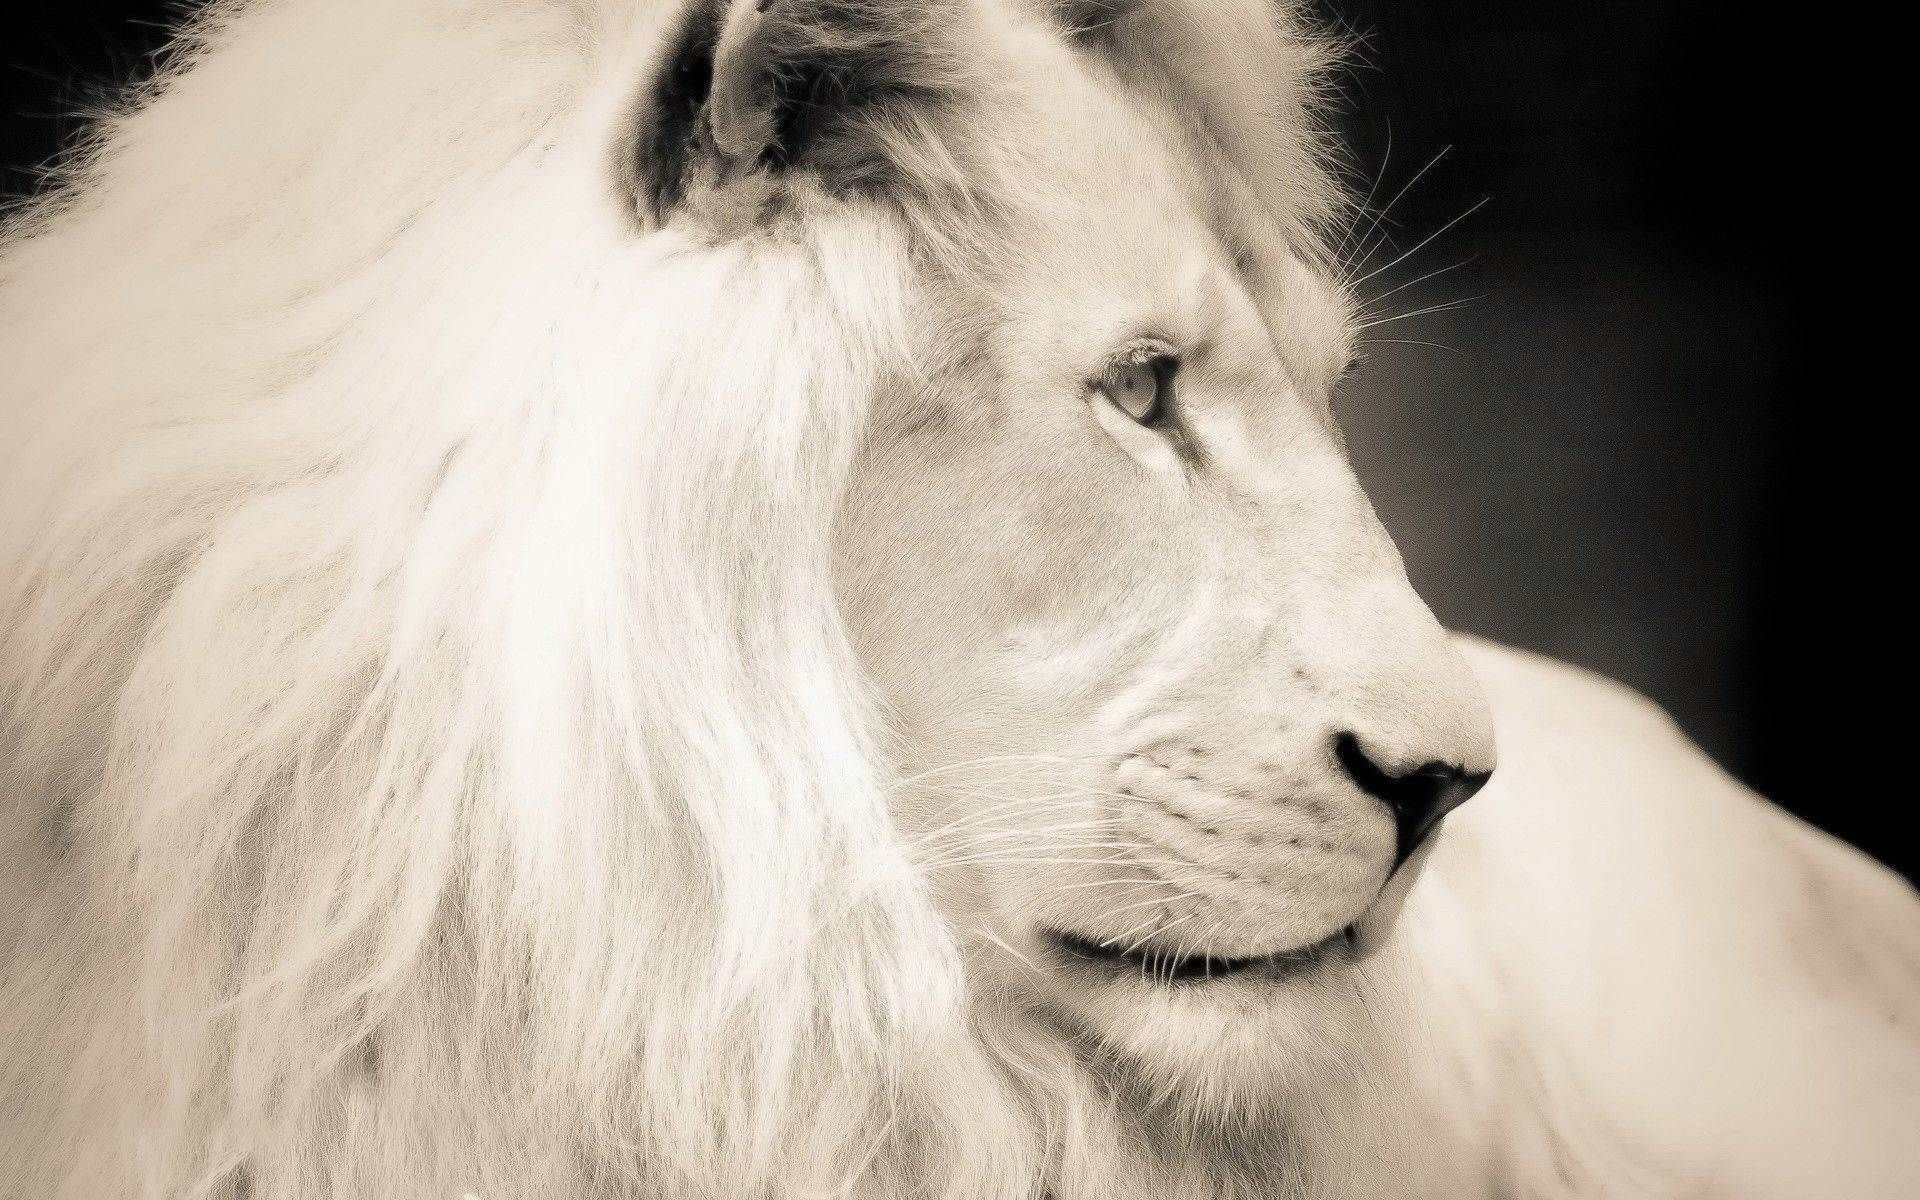 Download HD White Lion Wallpapers For Desktop Background Free 1920x1200 Images